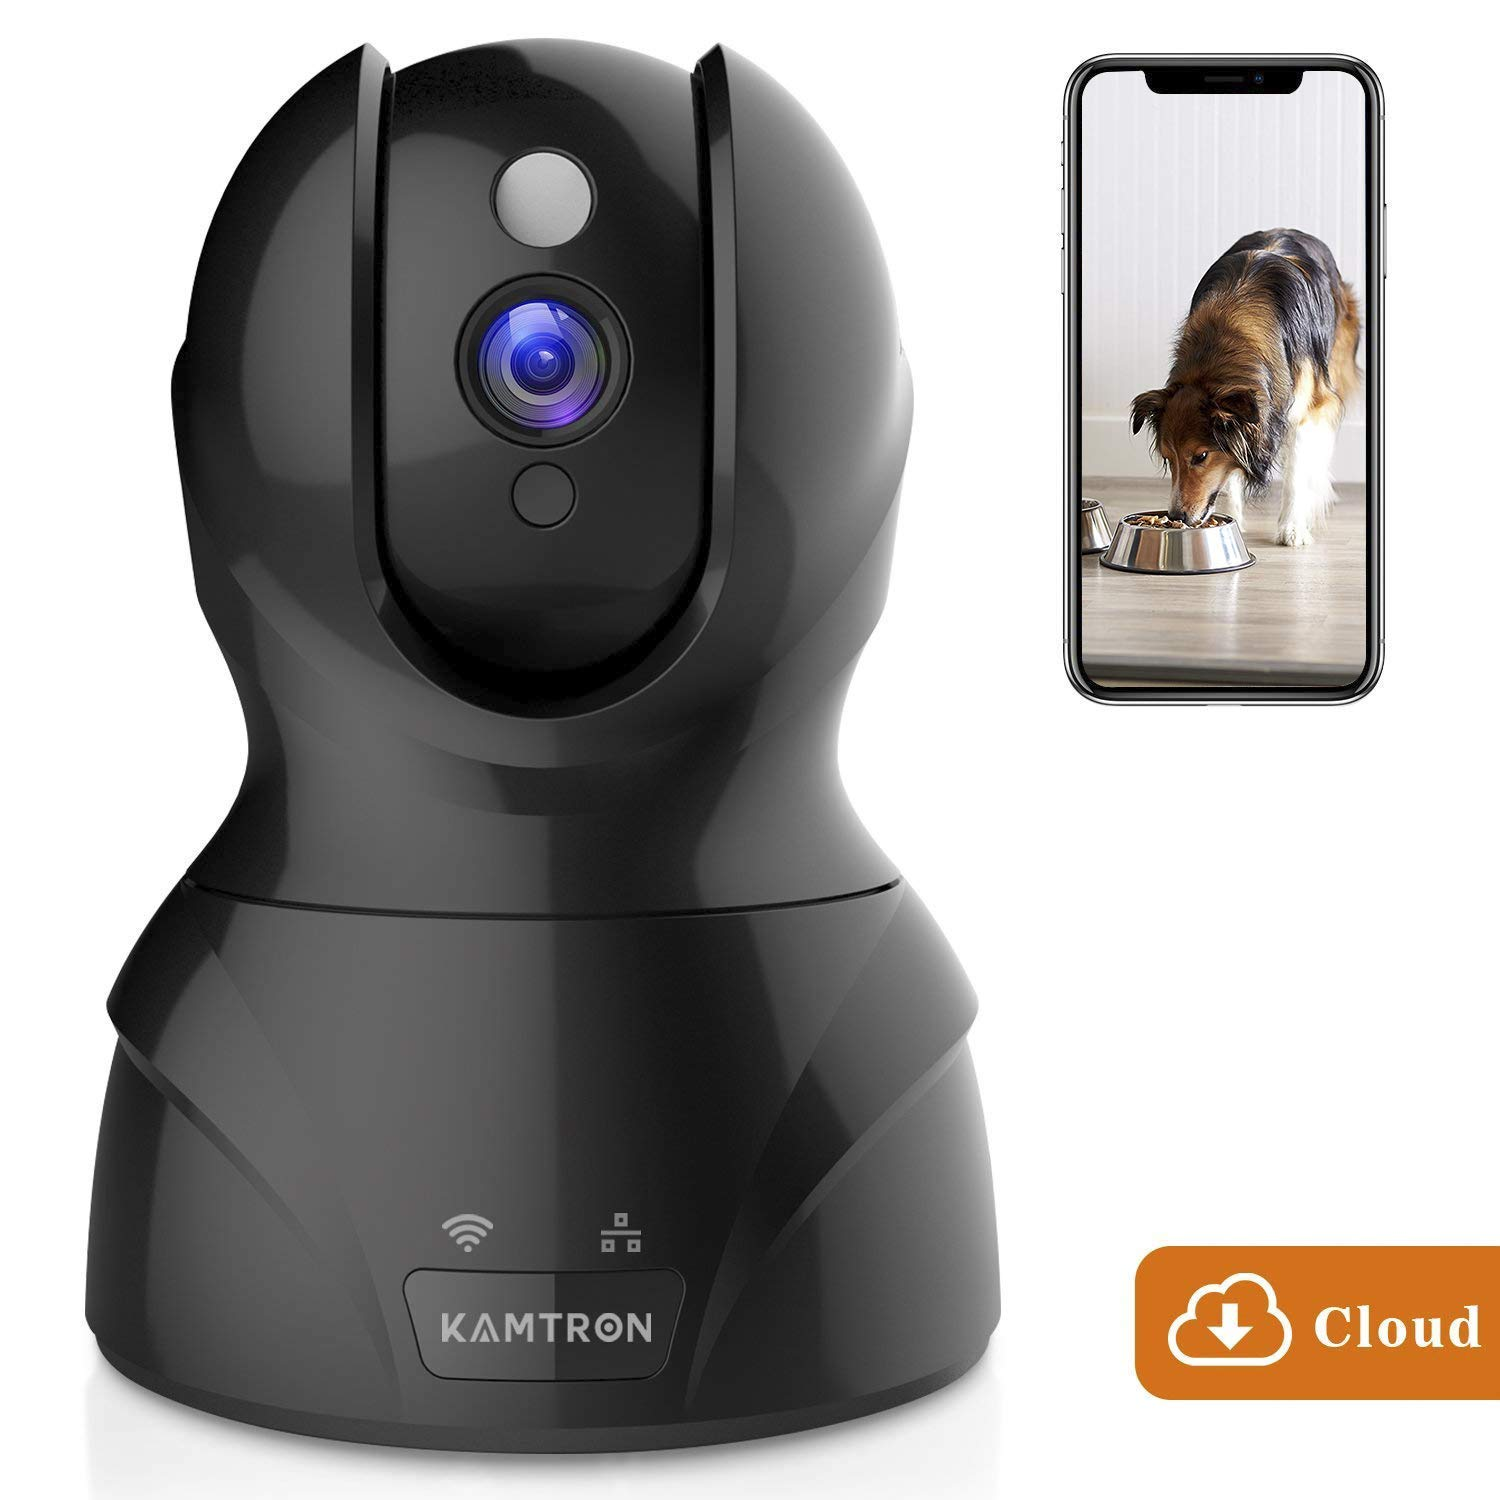 Security Camera WiFi IP Camera KAMTRON HD Home Wireless Baby Pet Camera with Cloud Storage Two Way Audio Motion Detection Night Vision Remote Monitoring Black